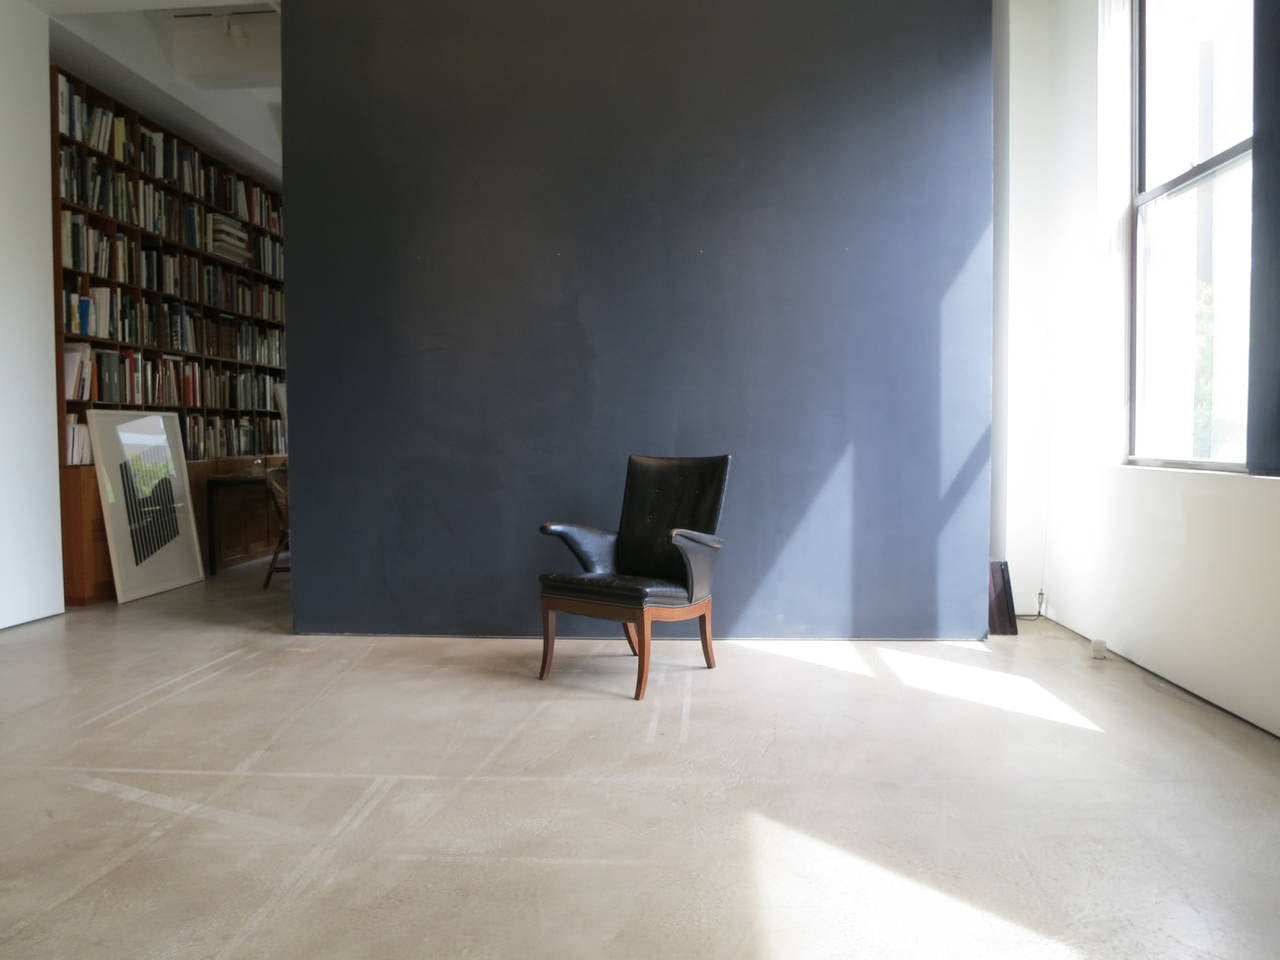 Mahogany Armchair in Original Black-Brown Leather by Frits Henningsen, 1930s For Sale